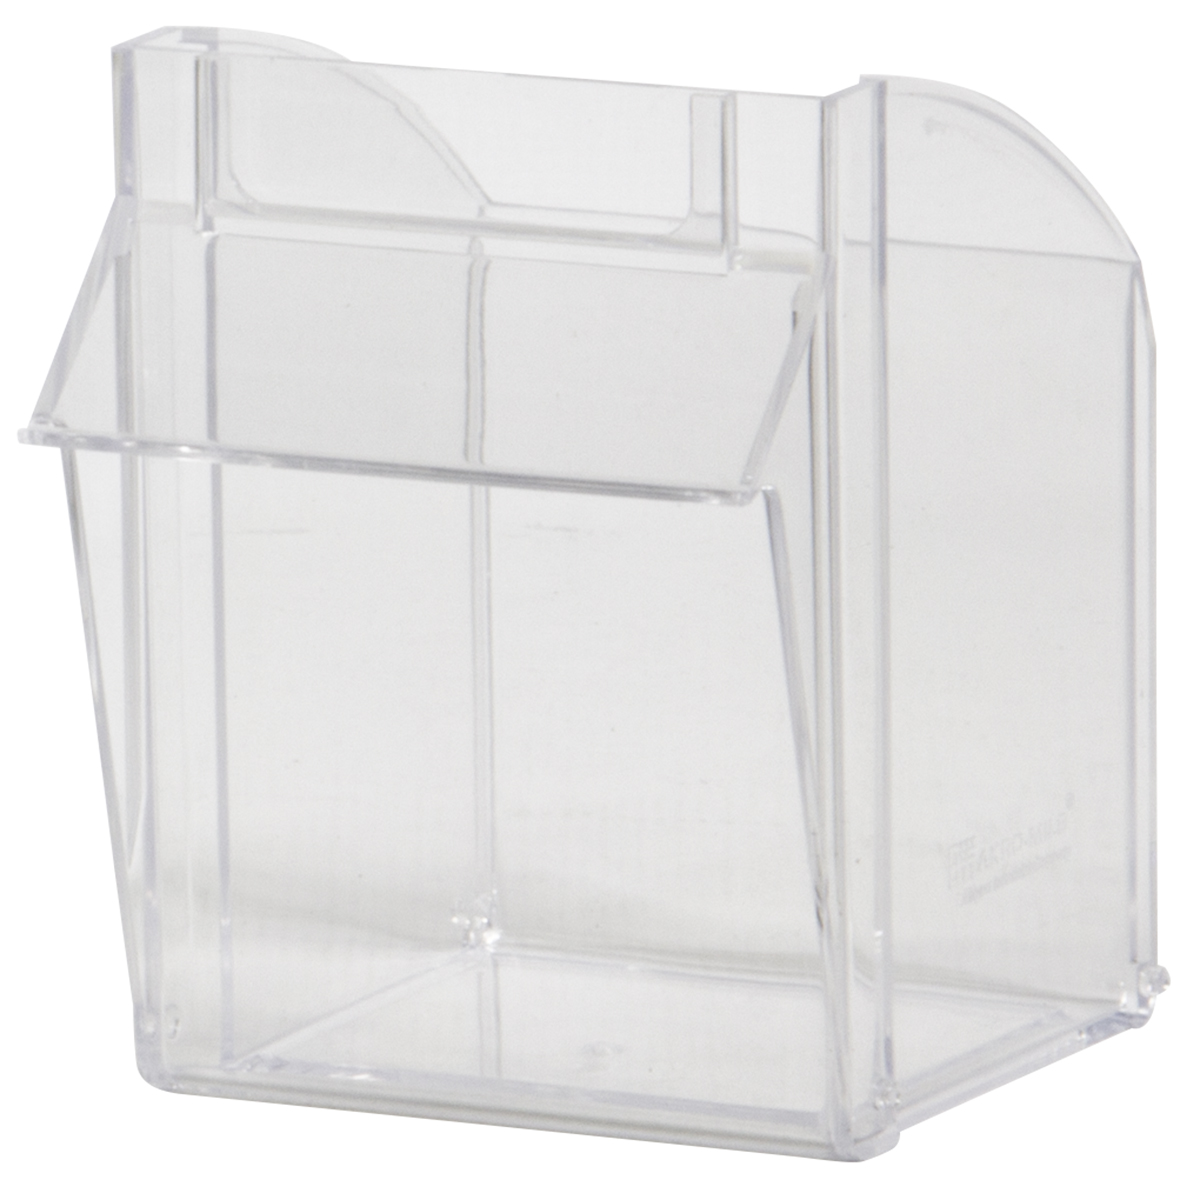 Replacement Bin for Model 06706, Clear (06706CUP).  This item sold in carton quantities of 1.